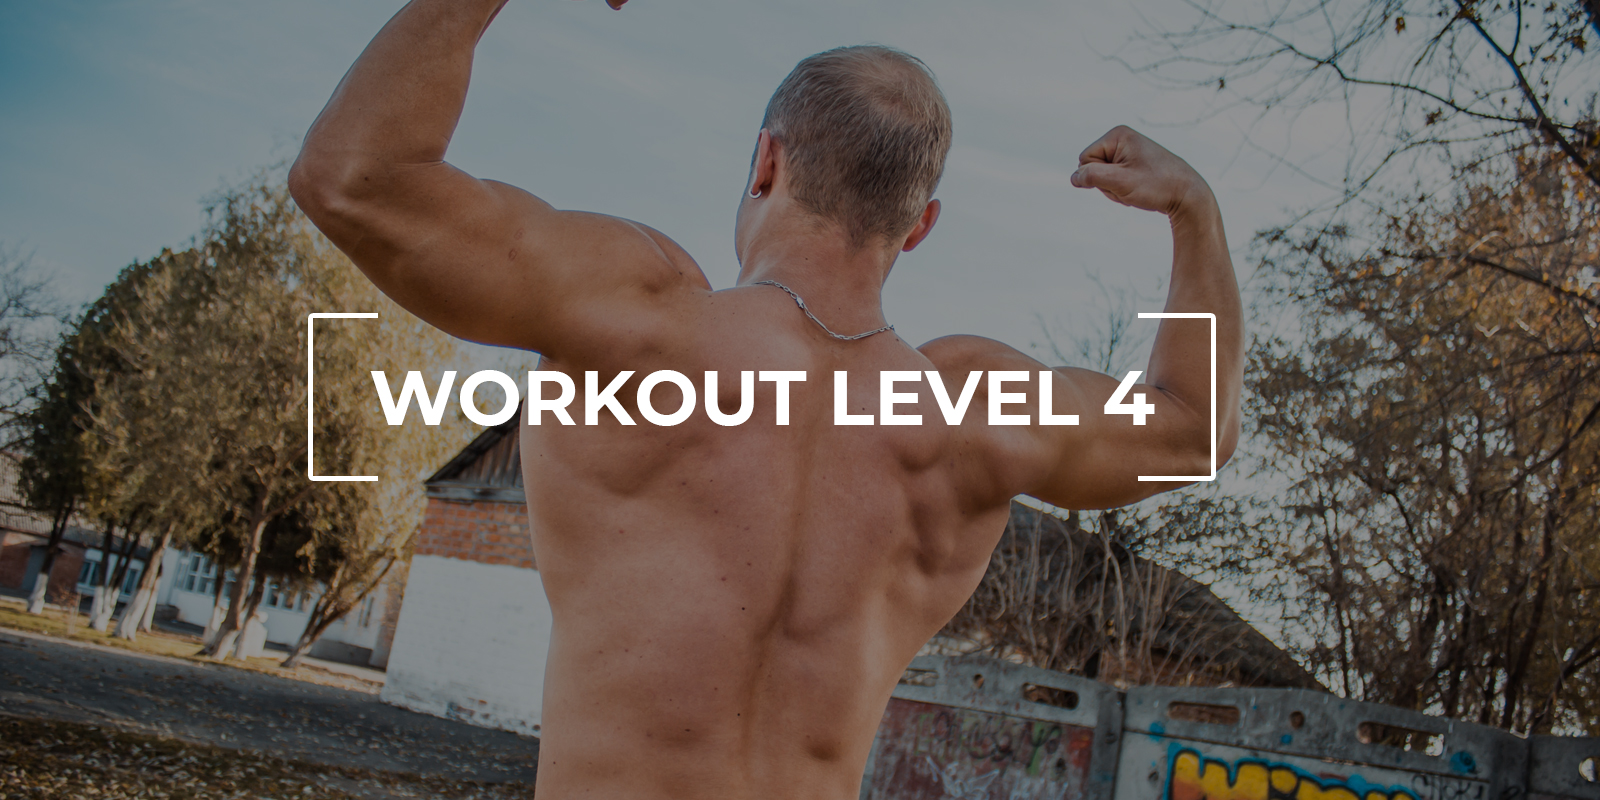 Workout Level 4 — Street Lifting Monster